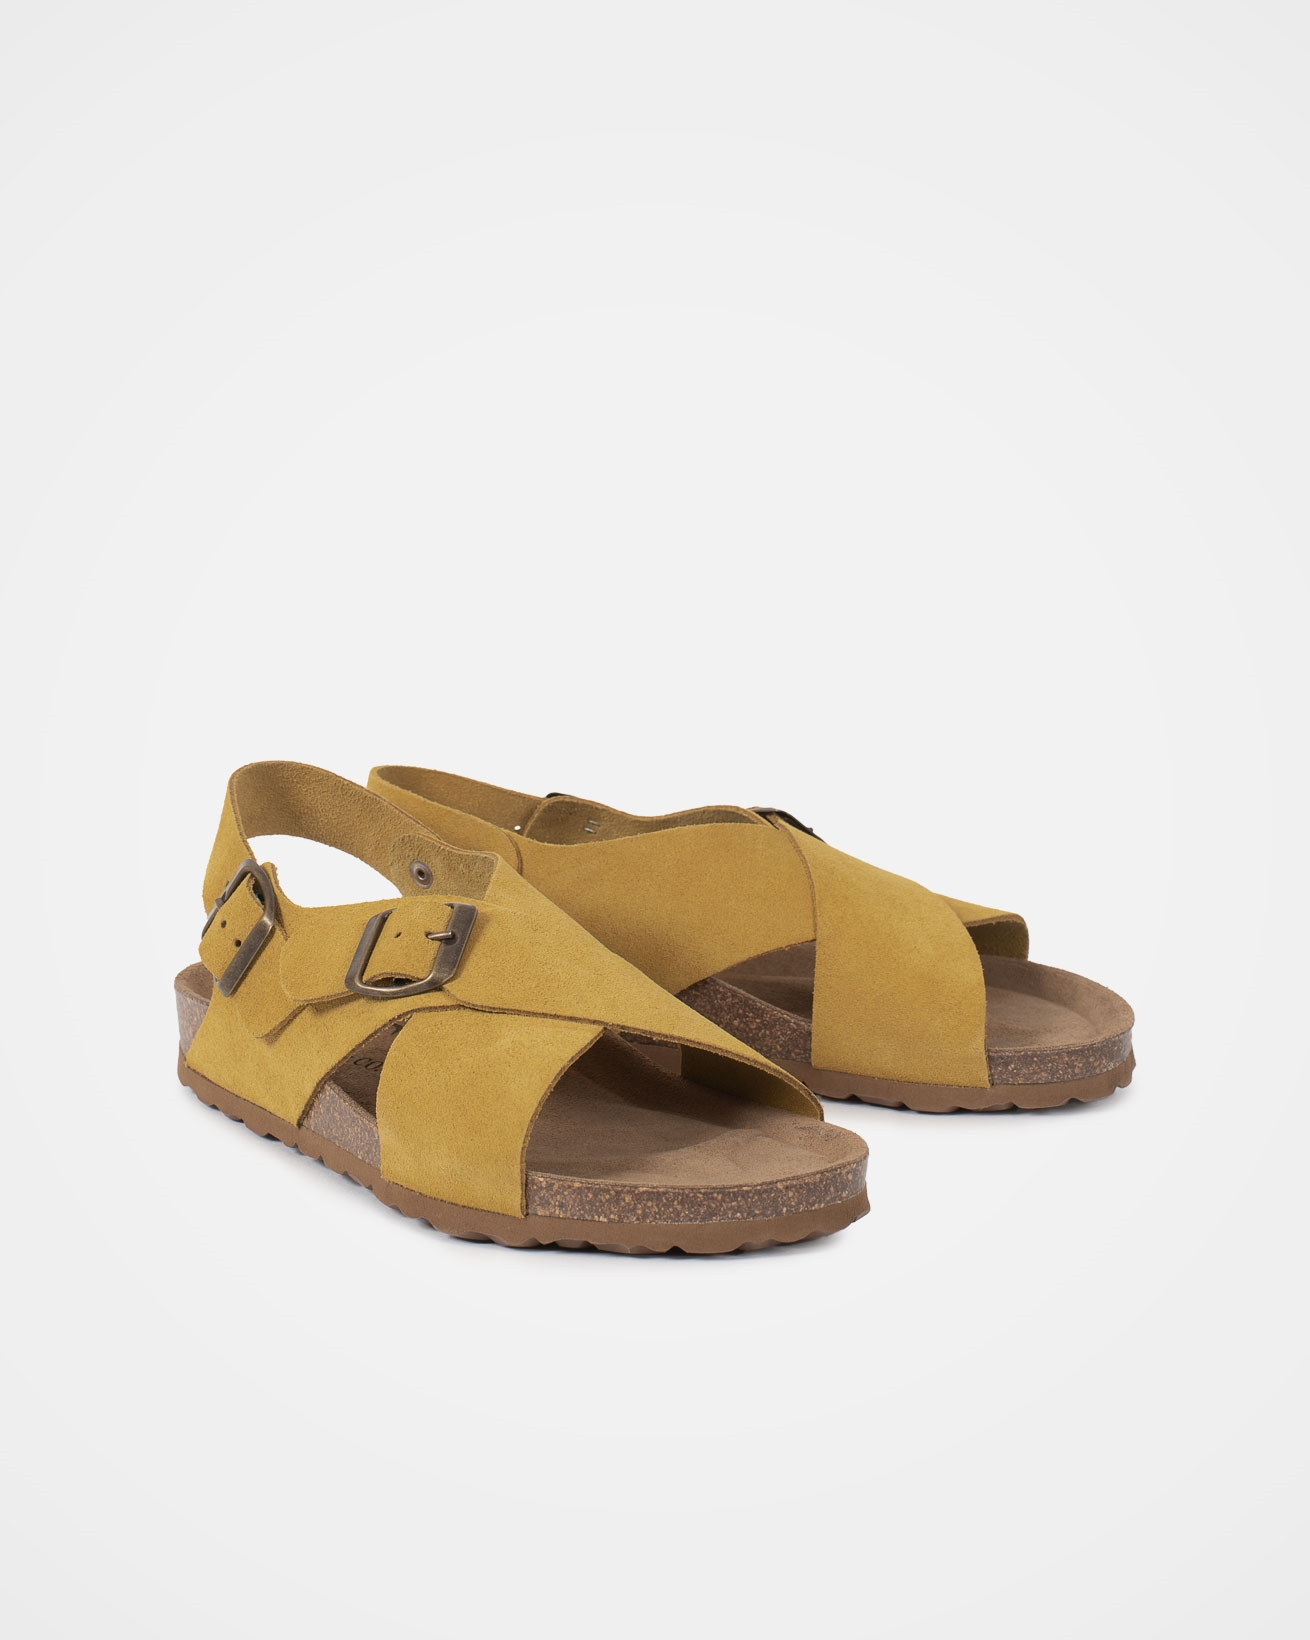 7786_crossover-buckle-sandals_gorse_pair-rev.jpg